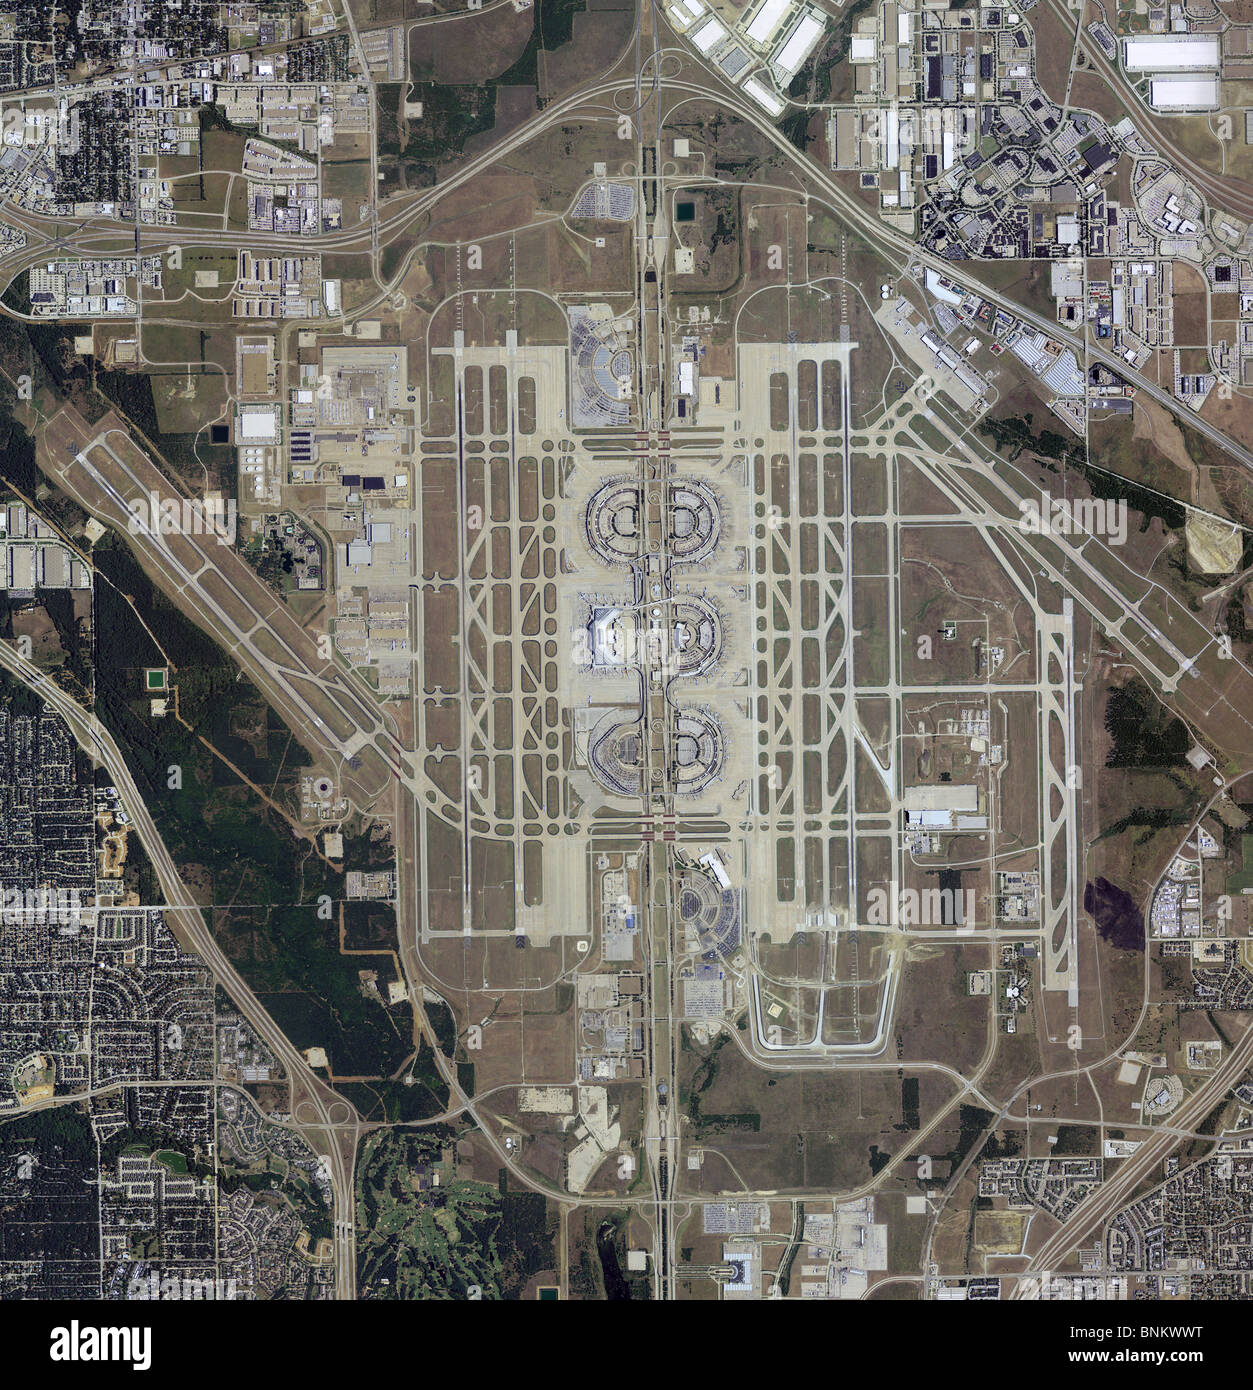 aerial map view dallas fort worth airport dfw texas stock photo  royalty free image  30555556